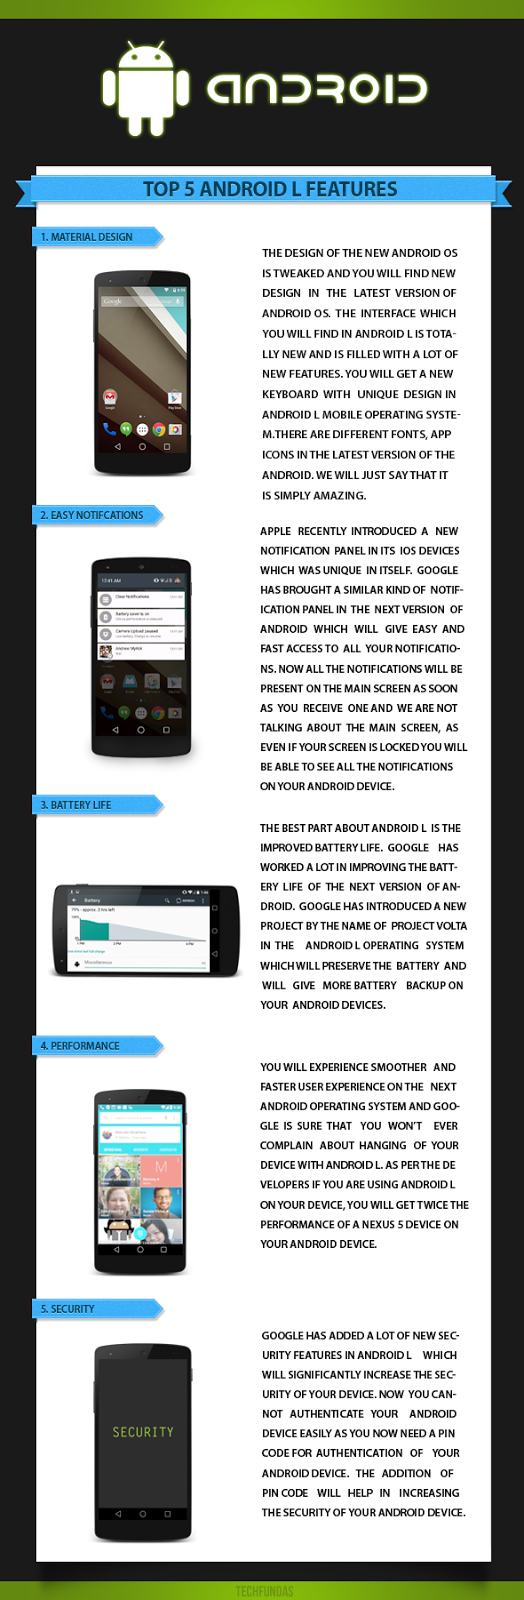 Top 5 Features of Android L [Infographic]